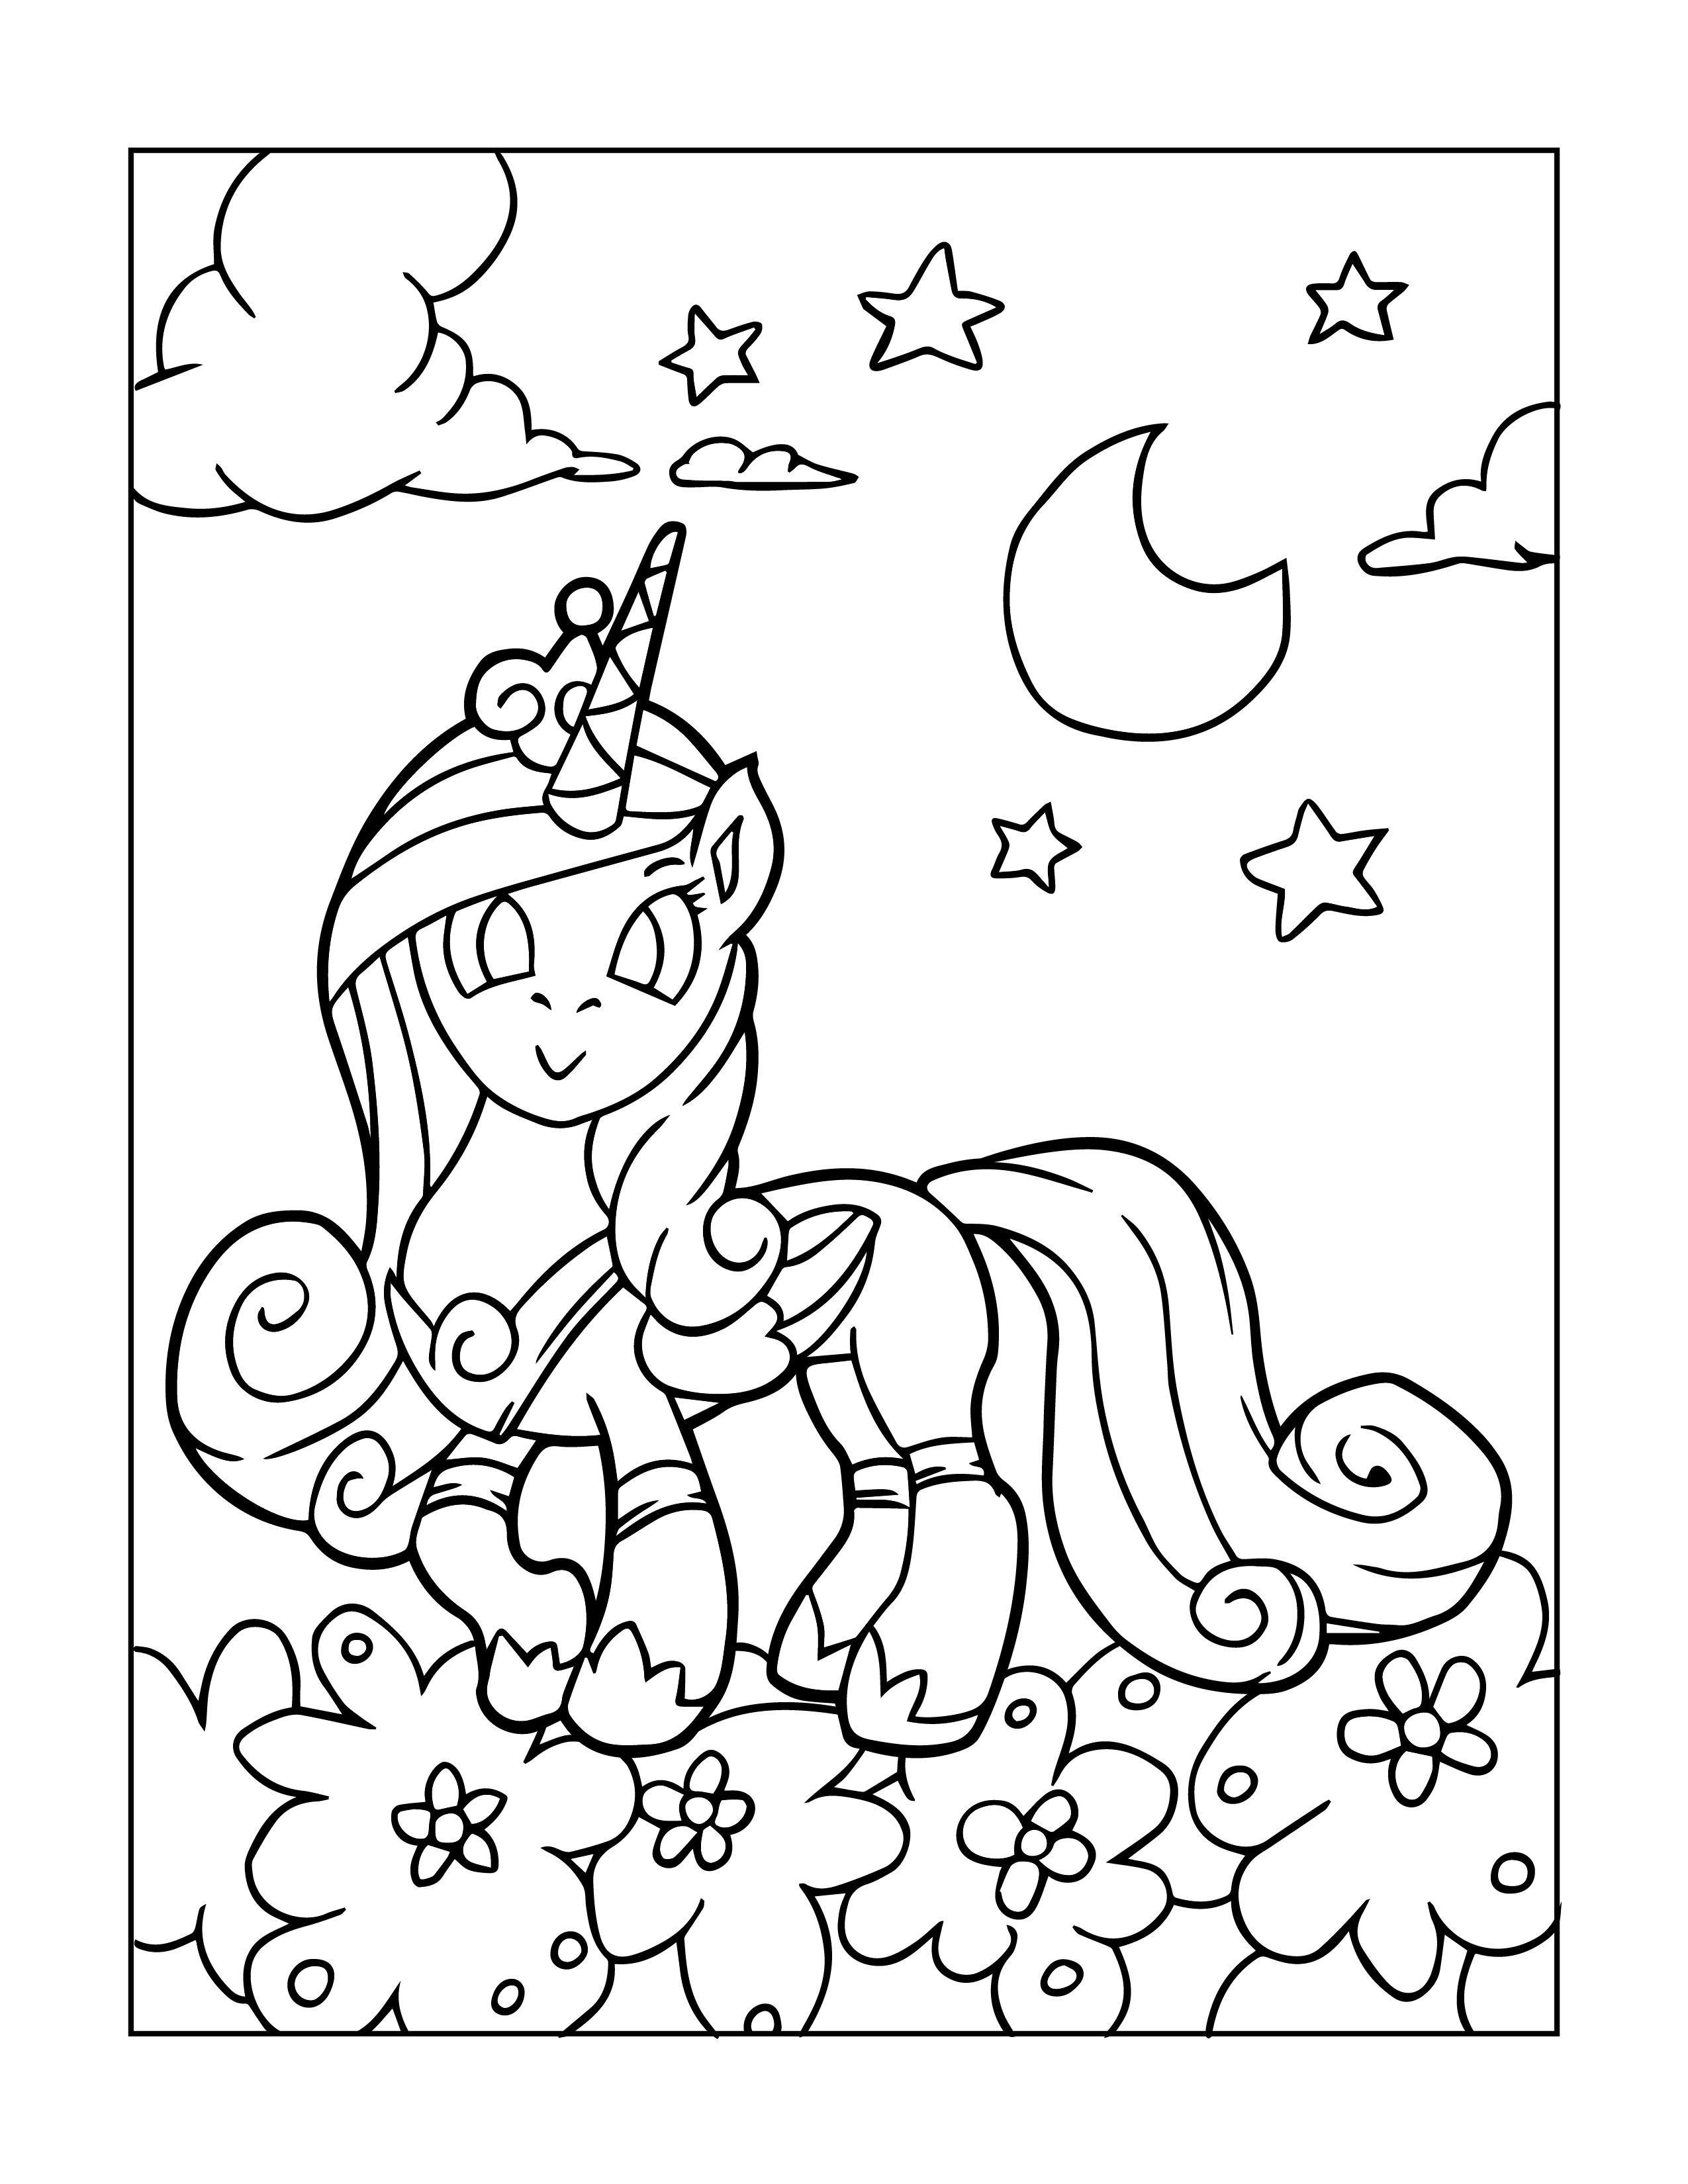 Free Unicorns Coloring Page for Kids. Beautiful Hand Drawn